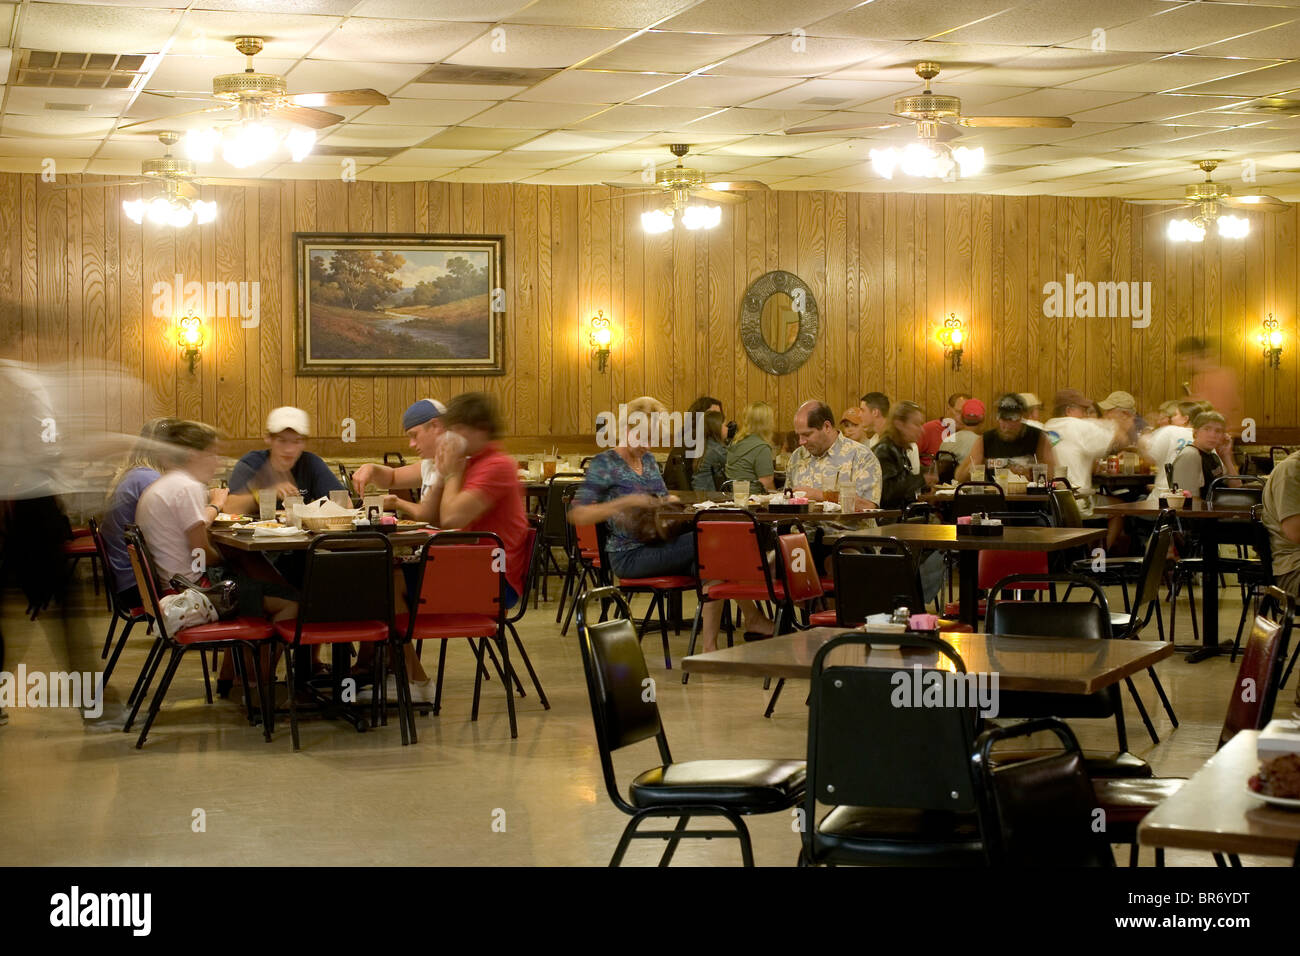 The interior of a restaurant with people eating in bee